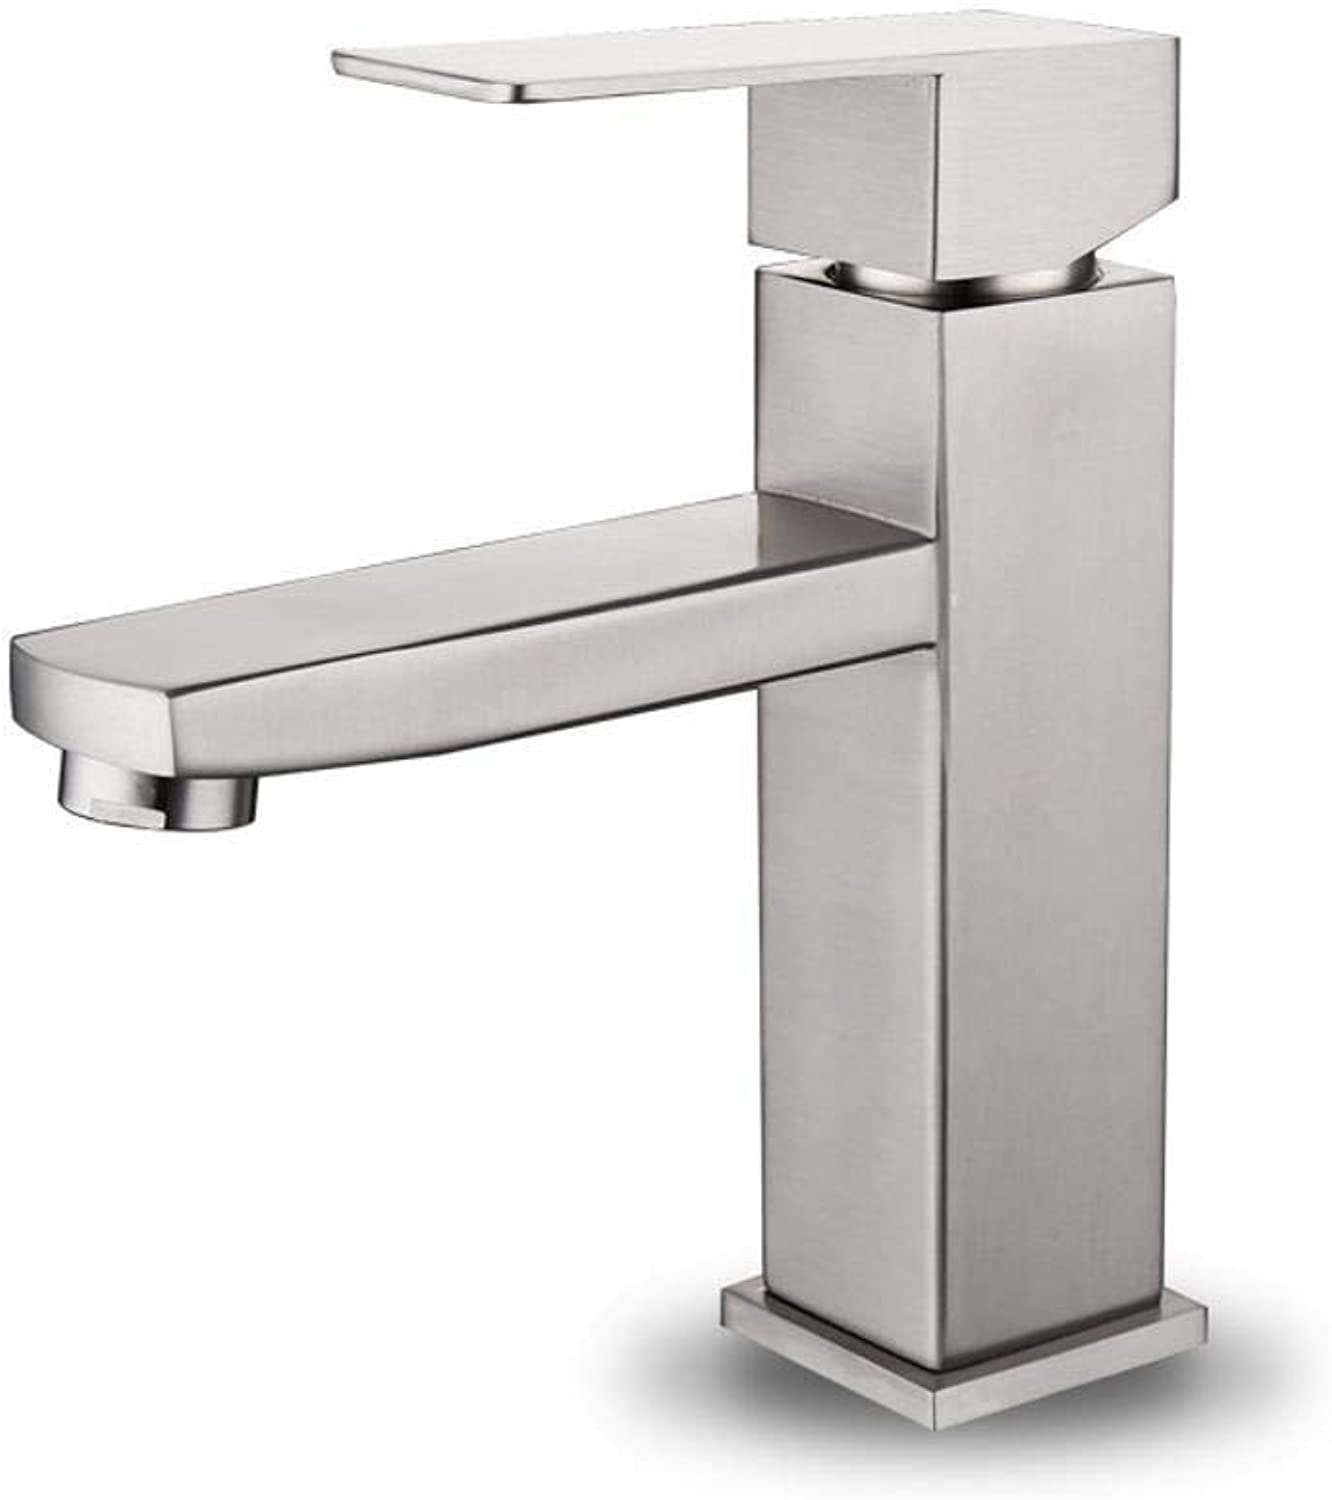 Qpw Sink Faucet Stainless Steel Square hot and Cold Basin Faucet Low Waist high Waist wash Basin Drawing